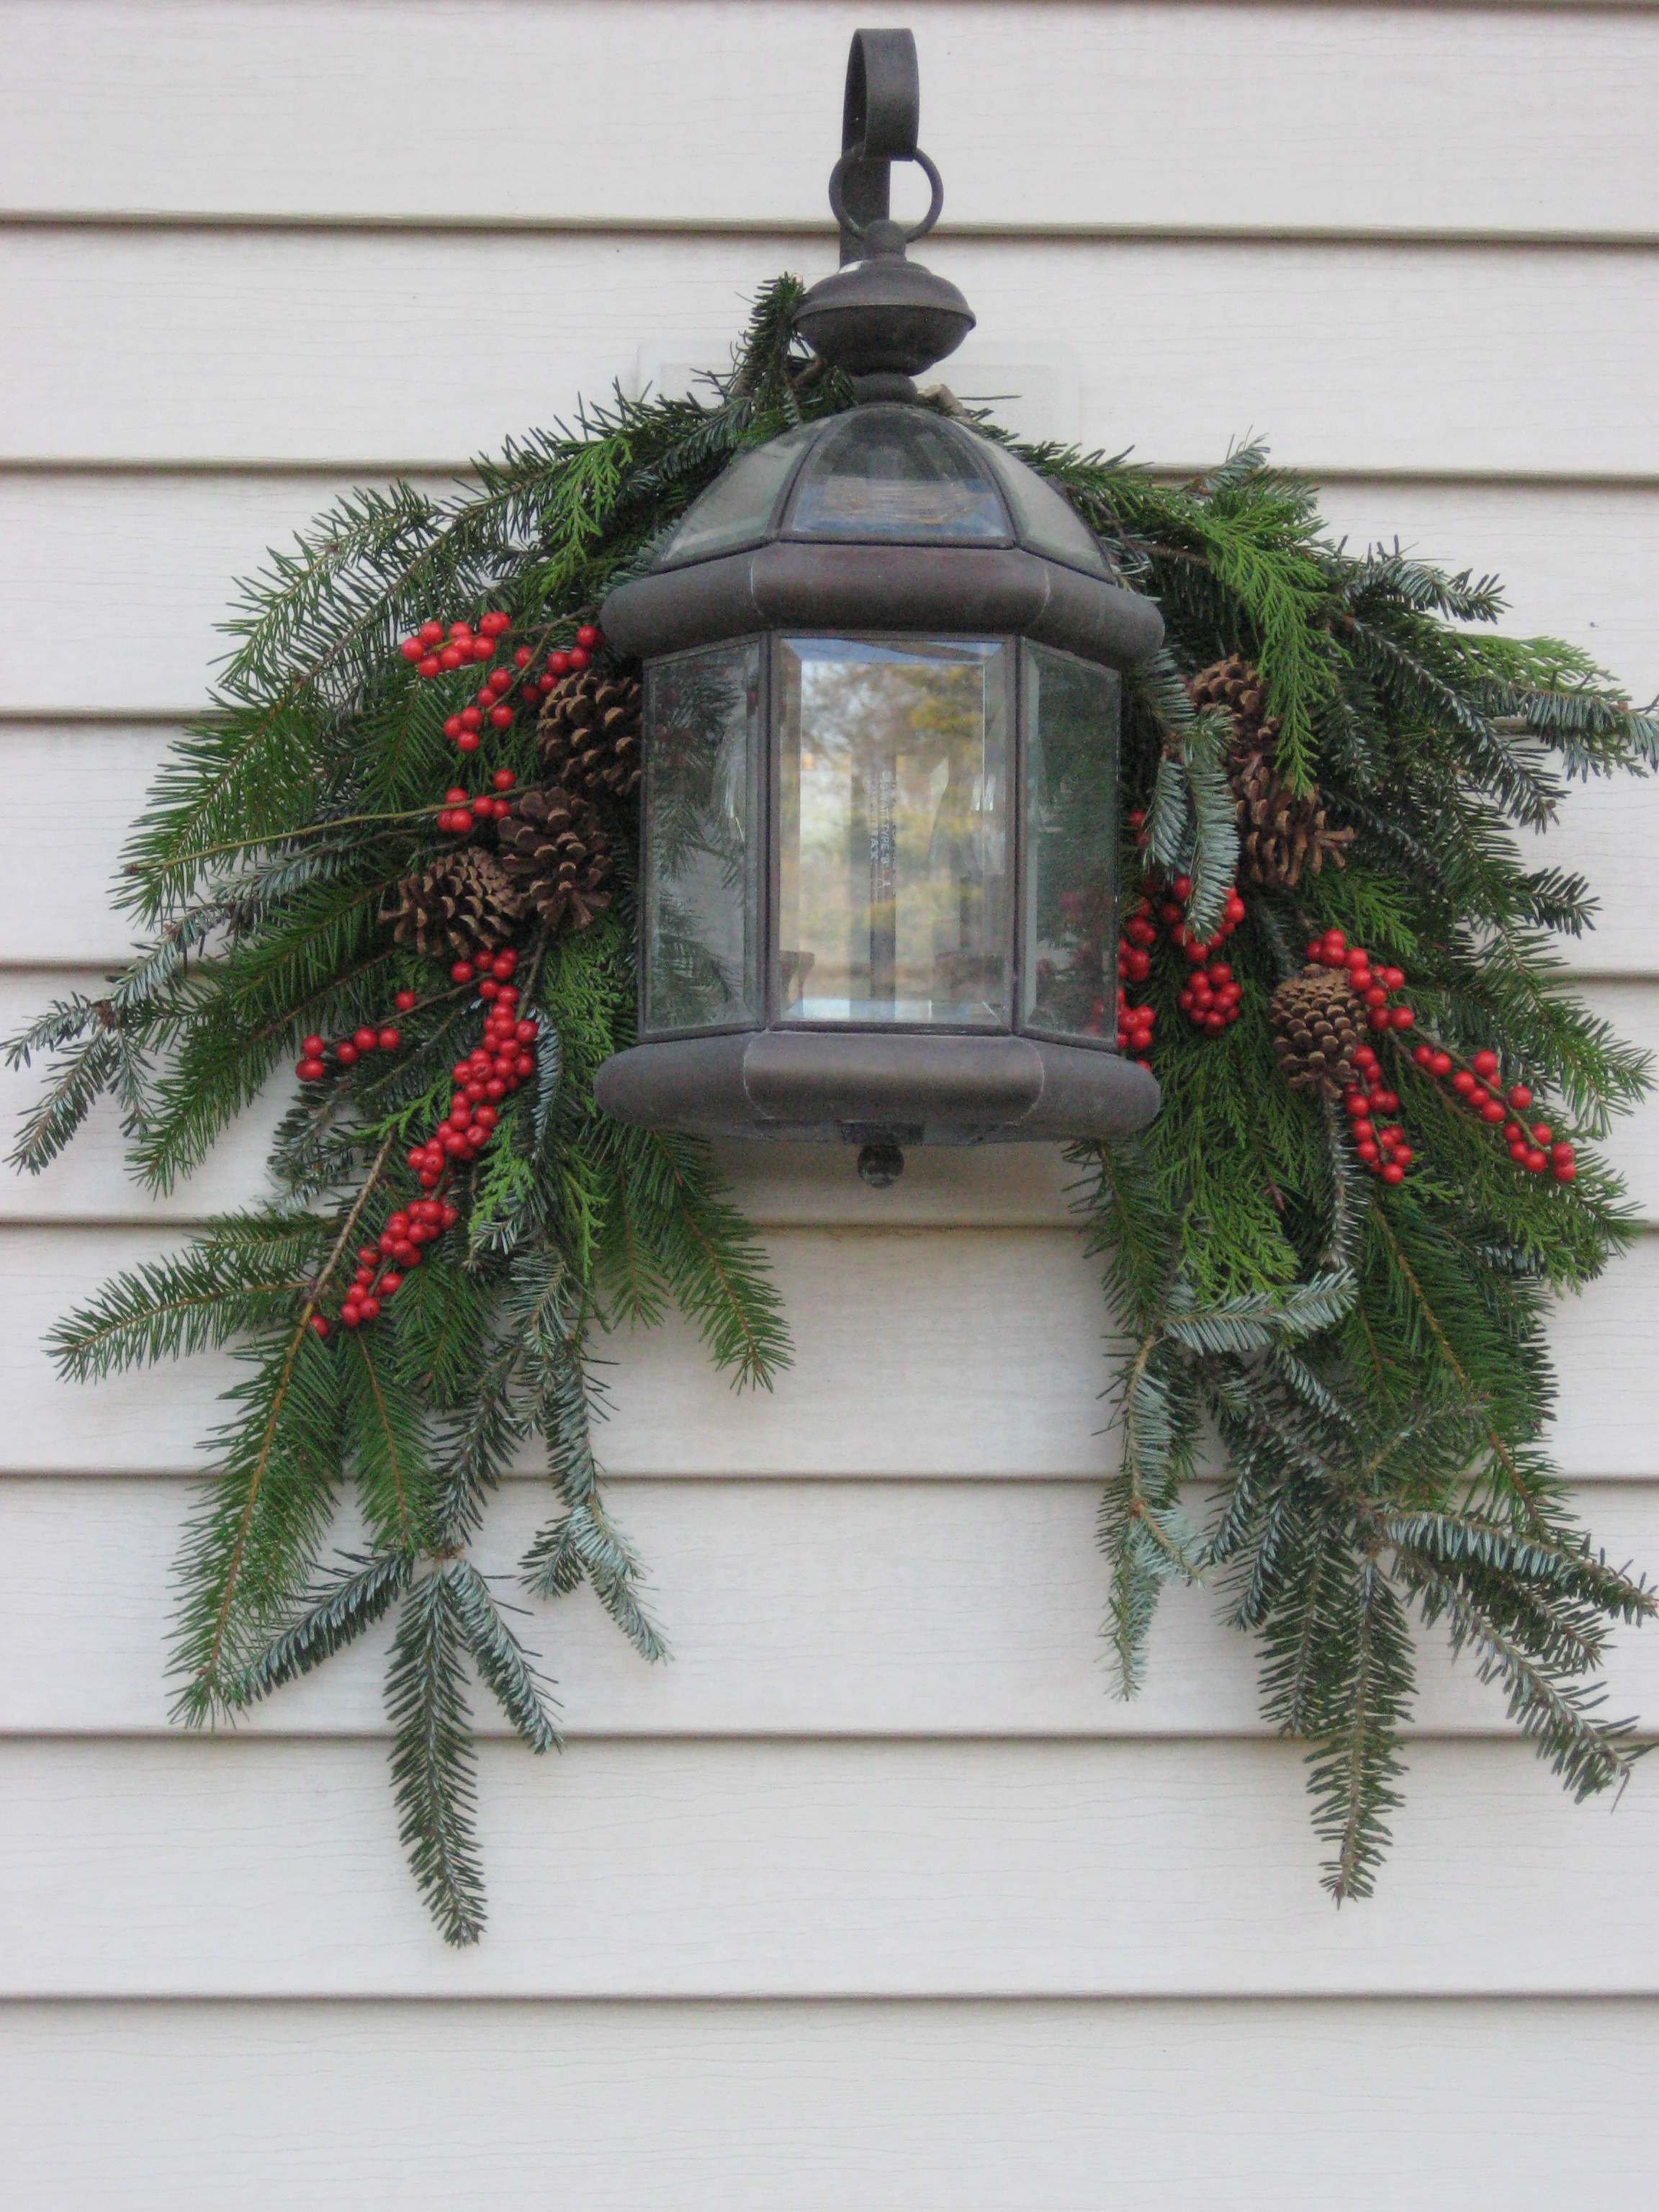 install indooroutdoor lighting photo of swag and lantern - Primitive Christmas Outdoor Decoration